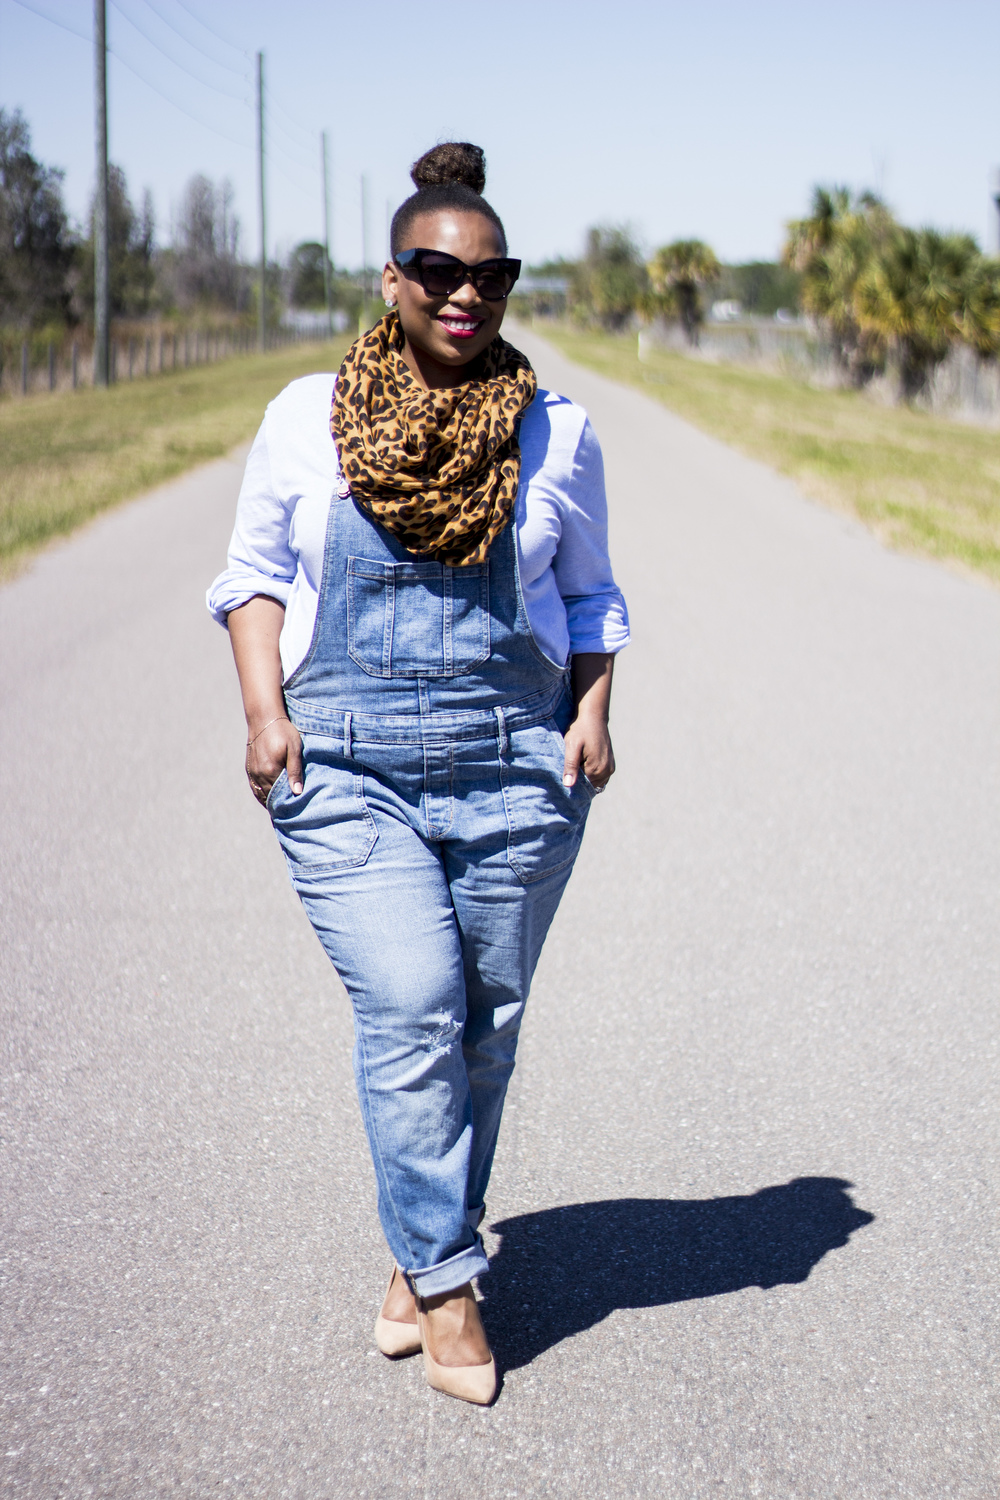 The leopard print scarf is a quirky version of the old farmer image. I added some cat eye sunglasses for extra glamour!